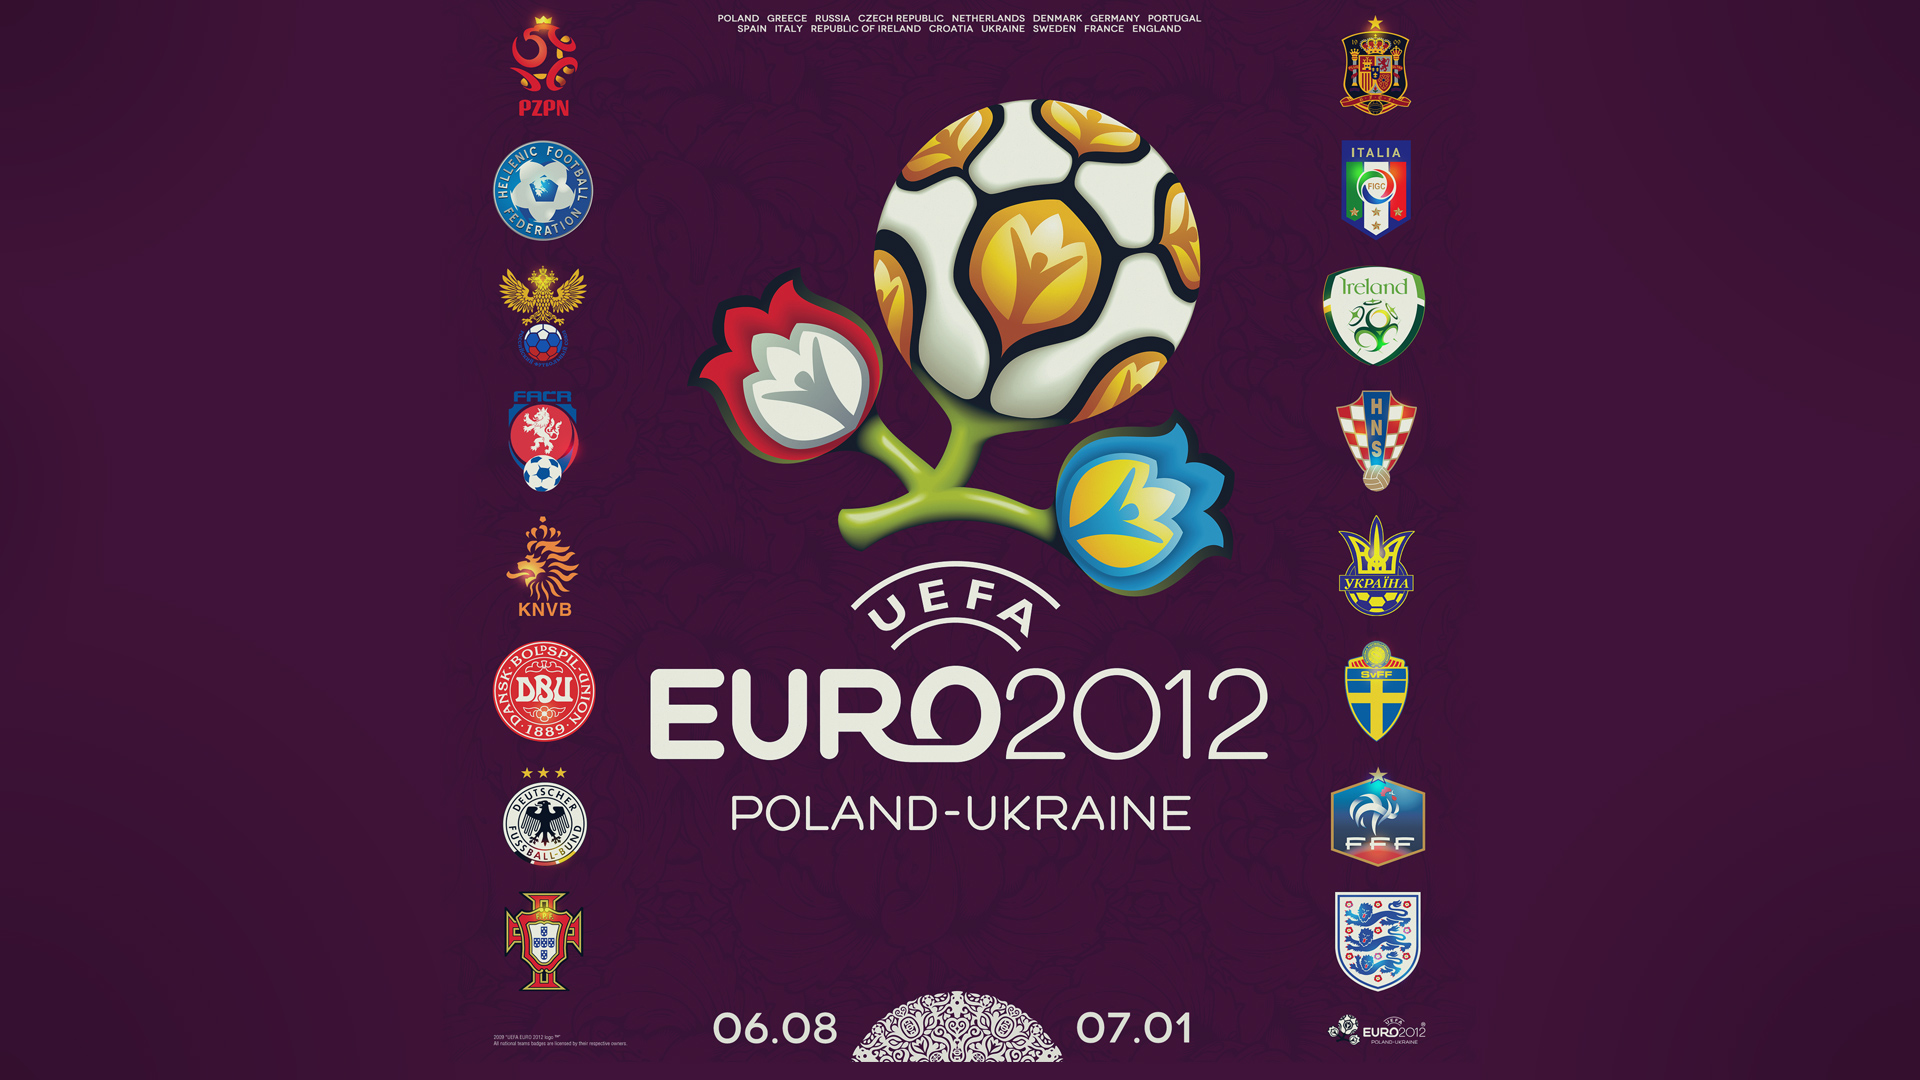 uefa-euro-2012-FULL-HD-wallpaper-1080p-soccer.jpg